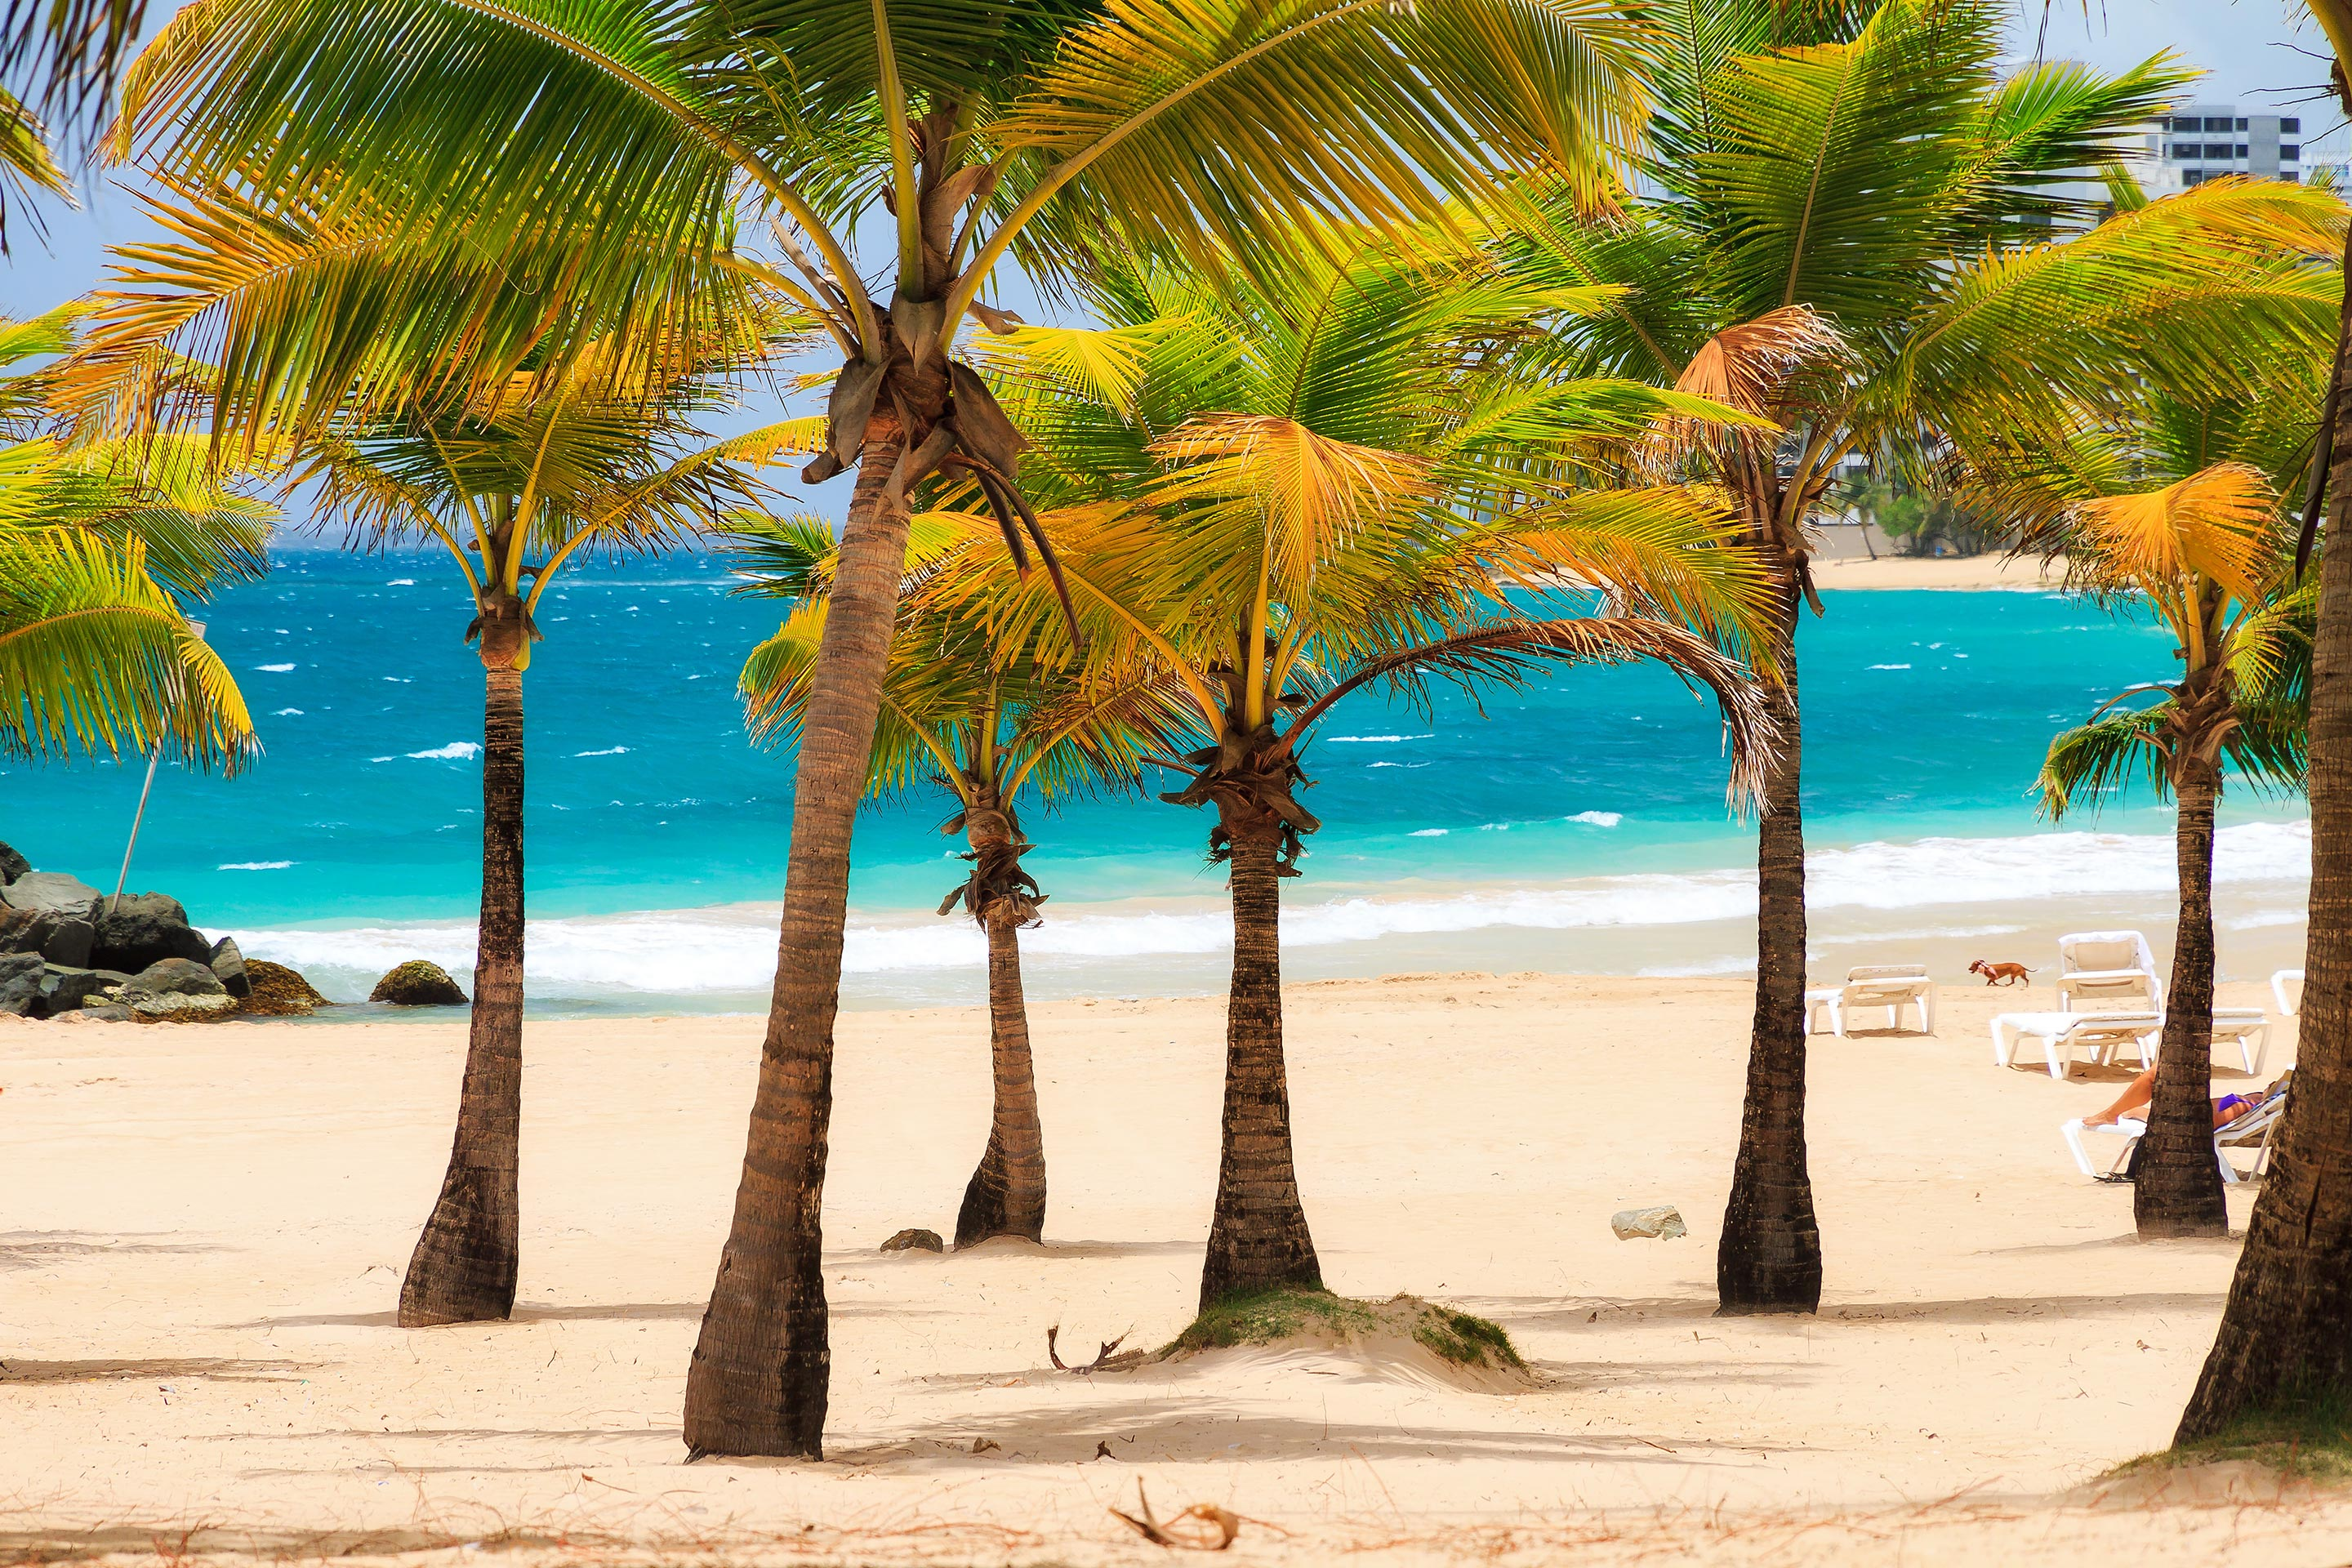 Tropical Palms on a Beautiful Beach in the Caribbean